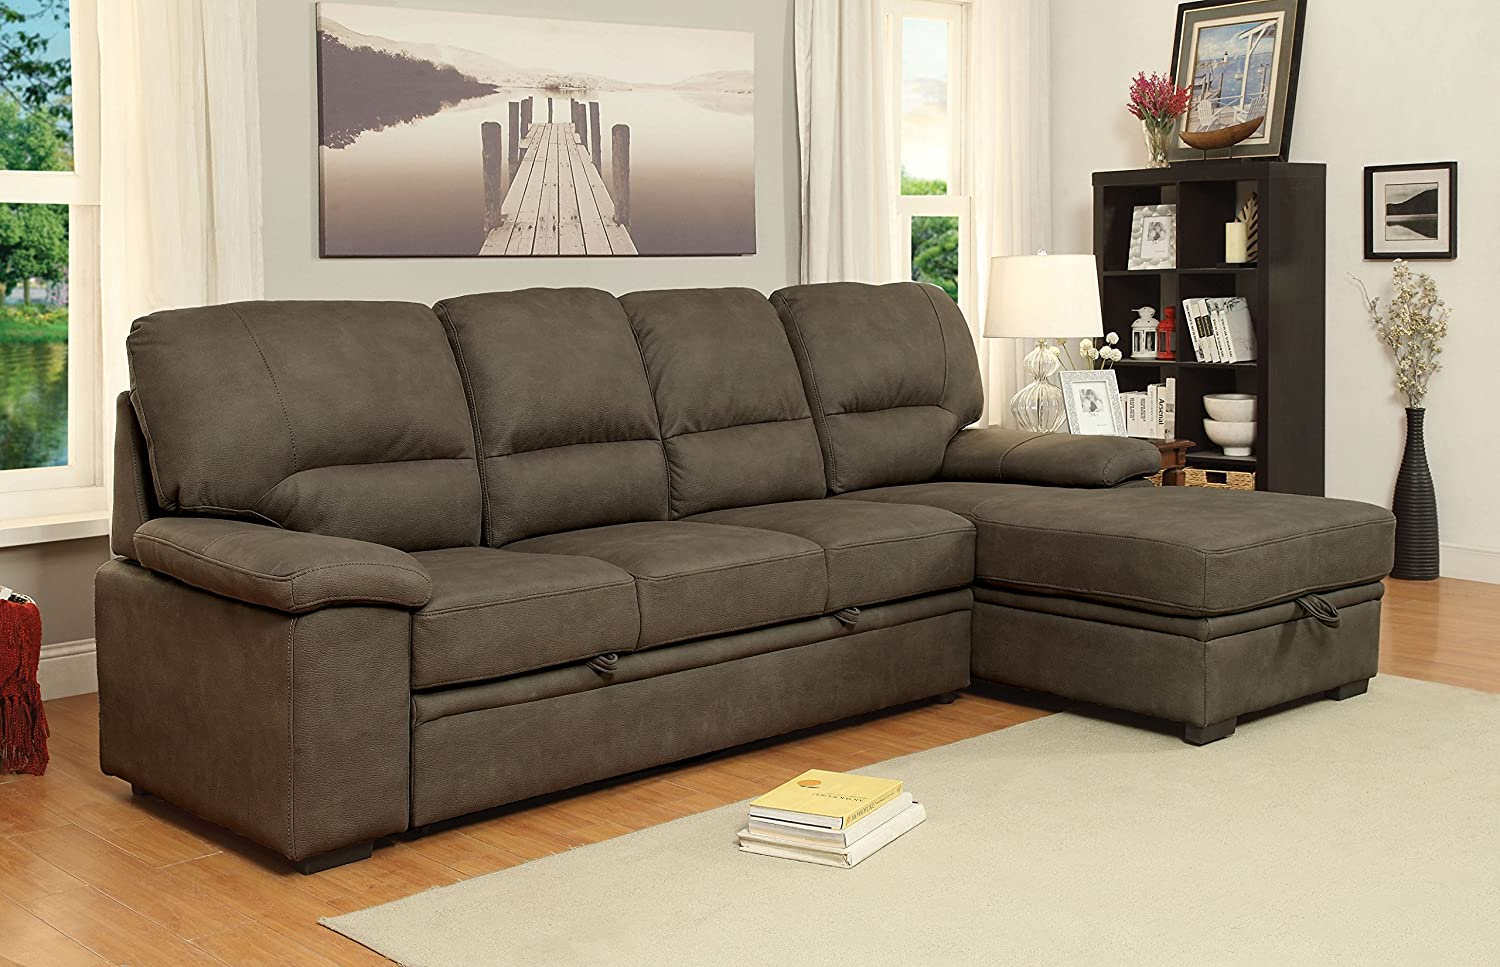 Furniture of America Canby Contemporary Sectional with Sleeper & Chaise, Ash Brown